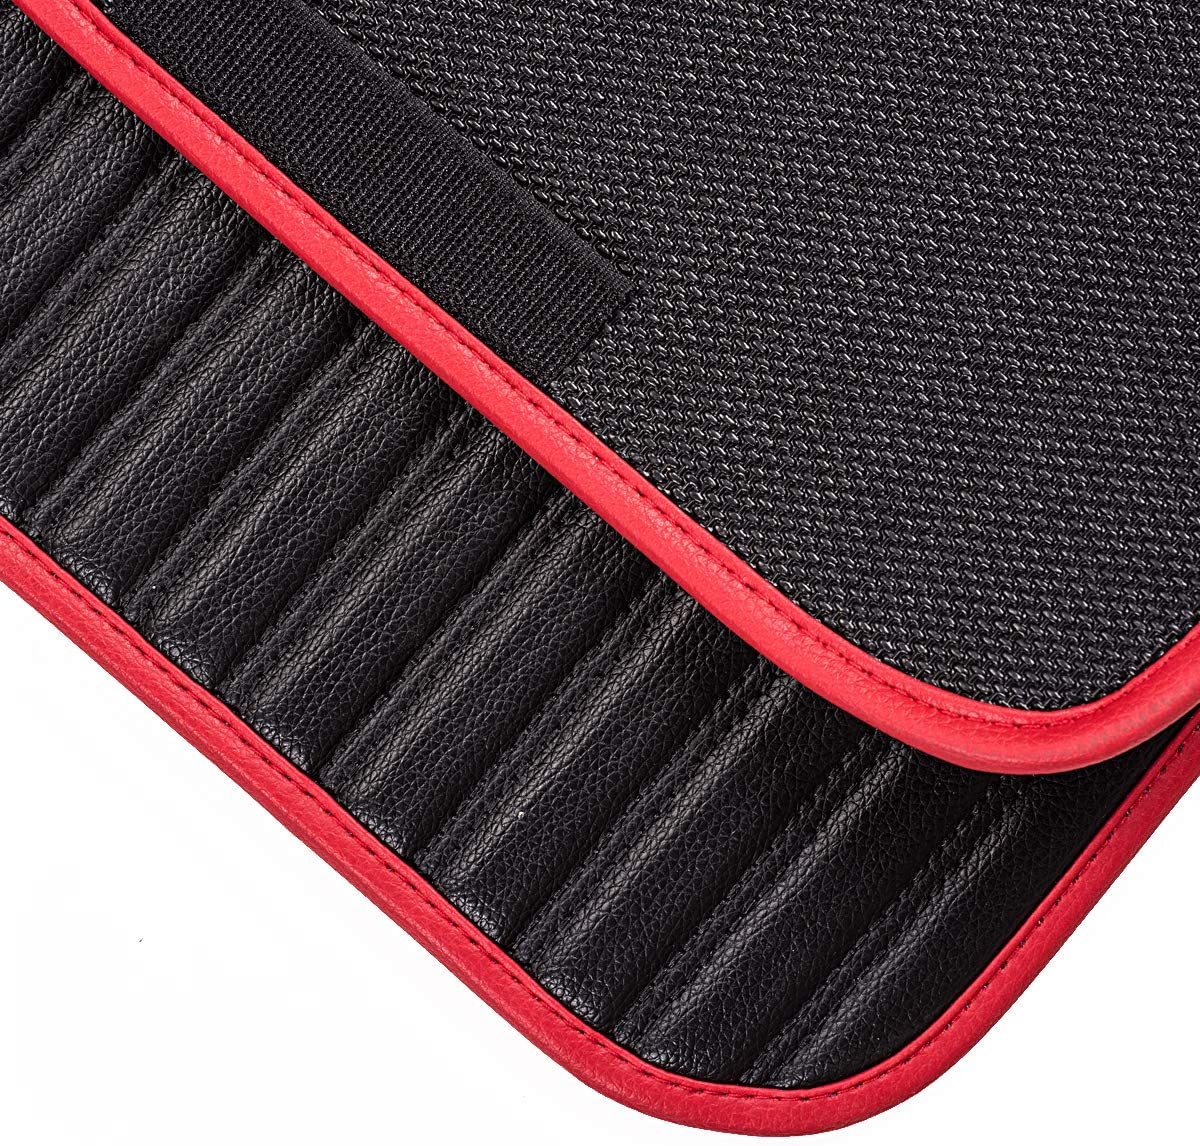 CAR Pass Universal Fit Leather 4pcs Car Floor Mat,Front and Rear mats Set,Fit for Suvs,Trucks,sedans,Vans Black and Red